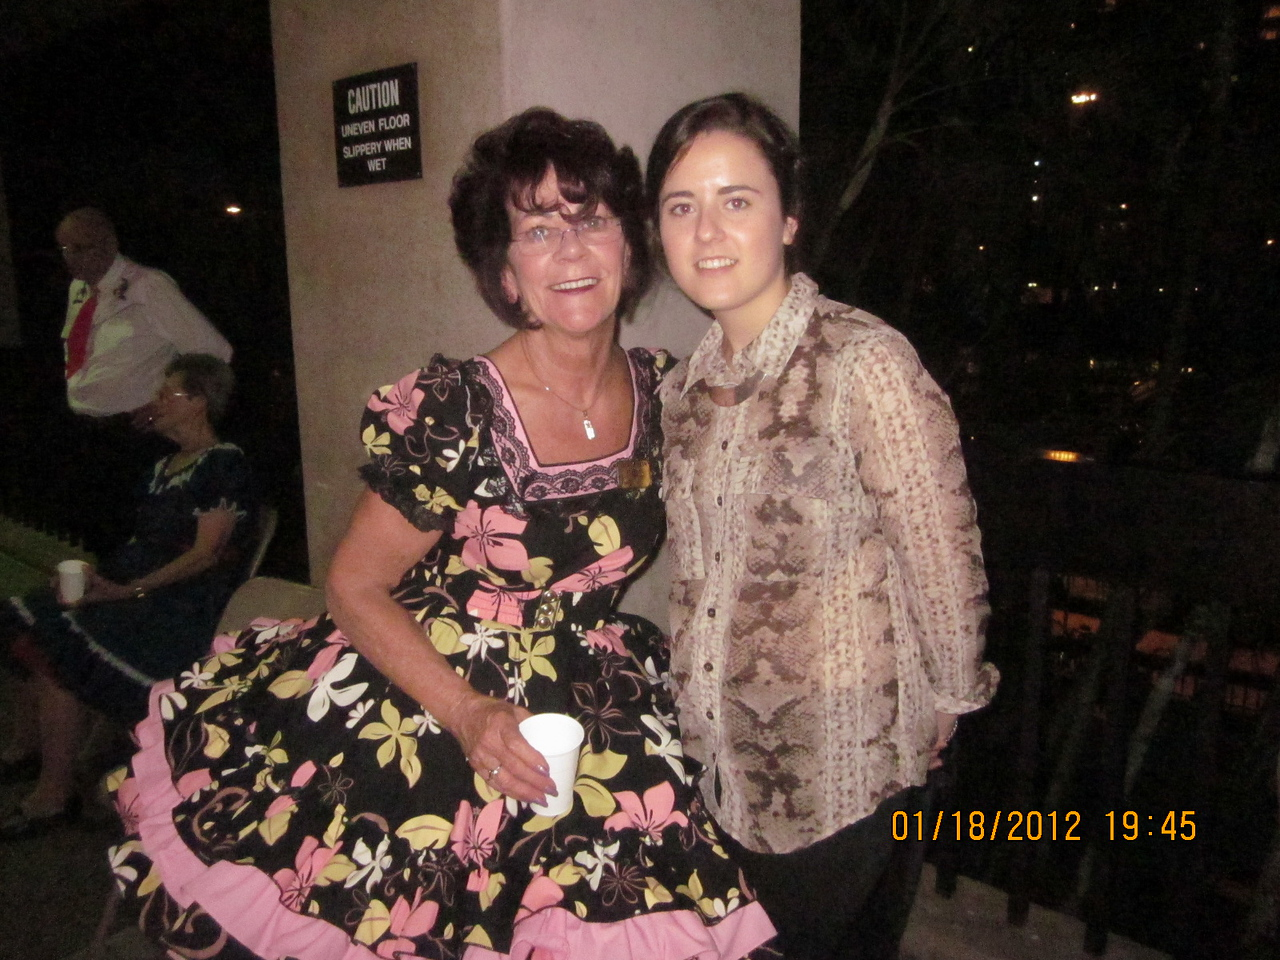 Judy and her beautiful grand daughter Maddison, from Australia!